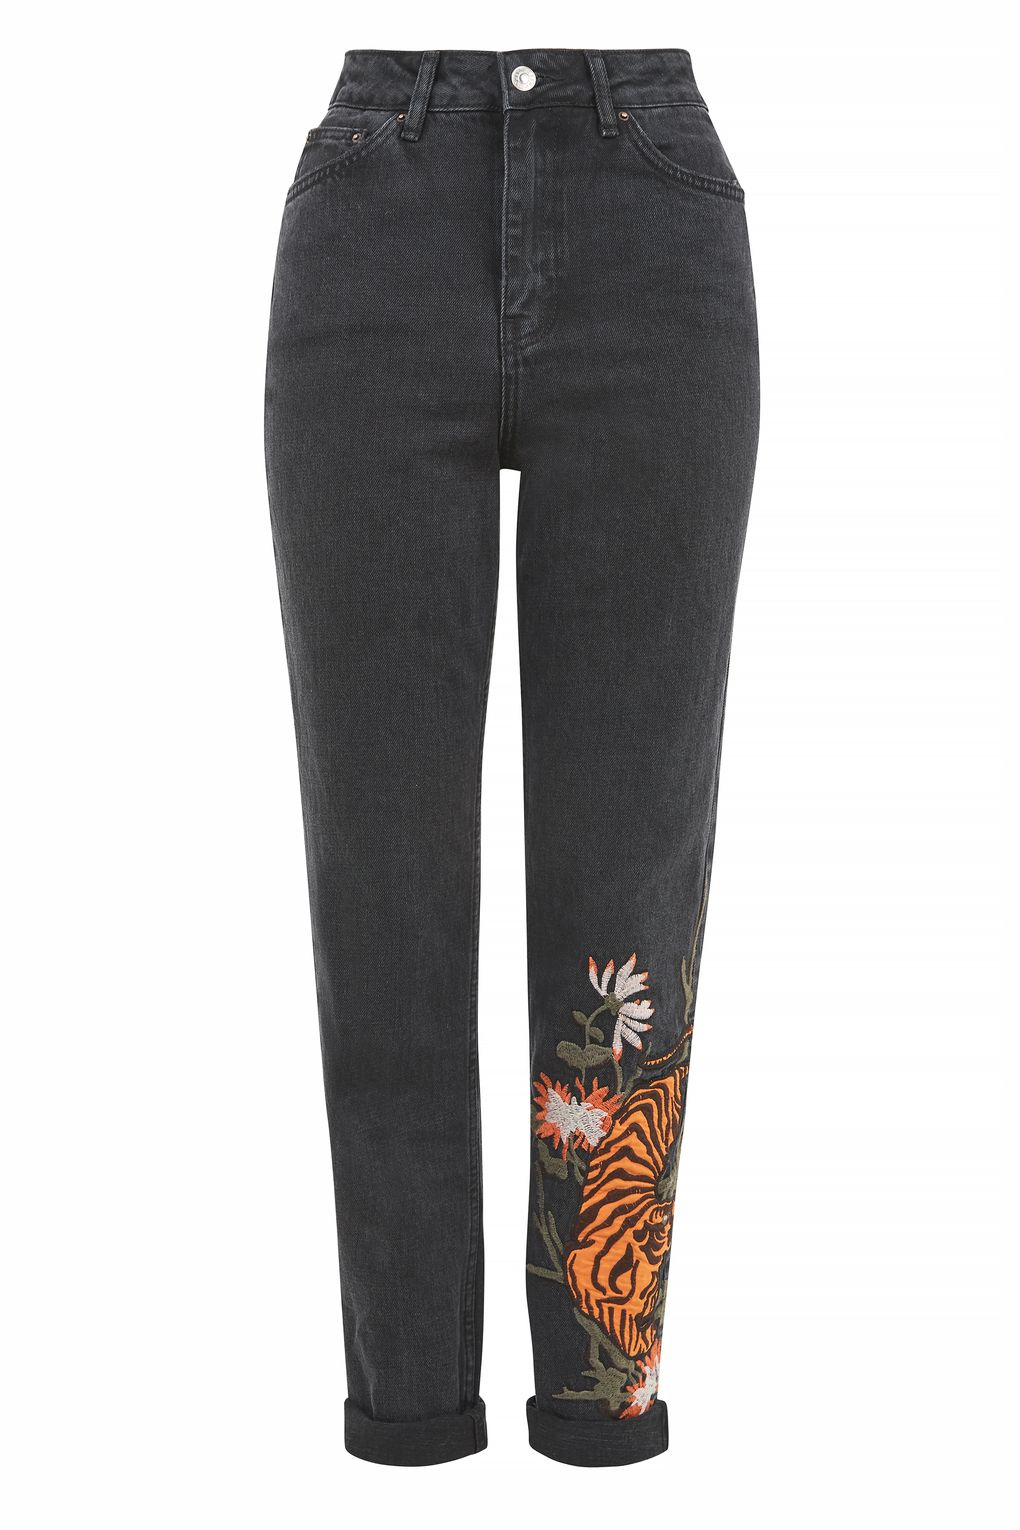 TOPSHOP MOTO TIGER EMBROIDERED MOM JEANS